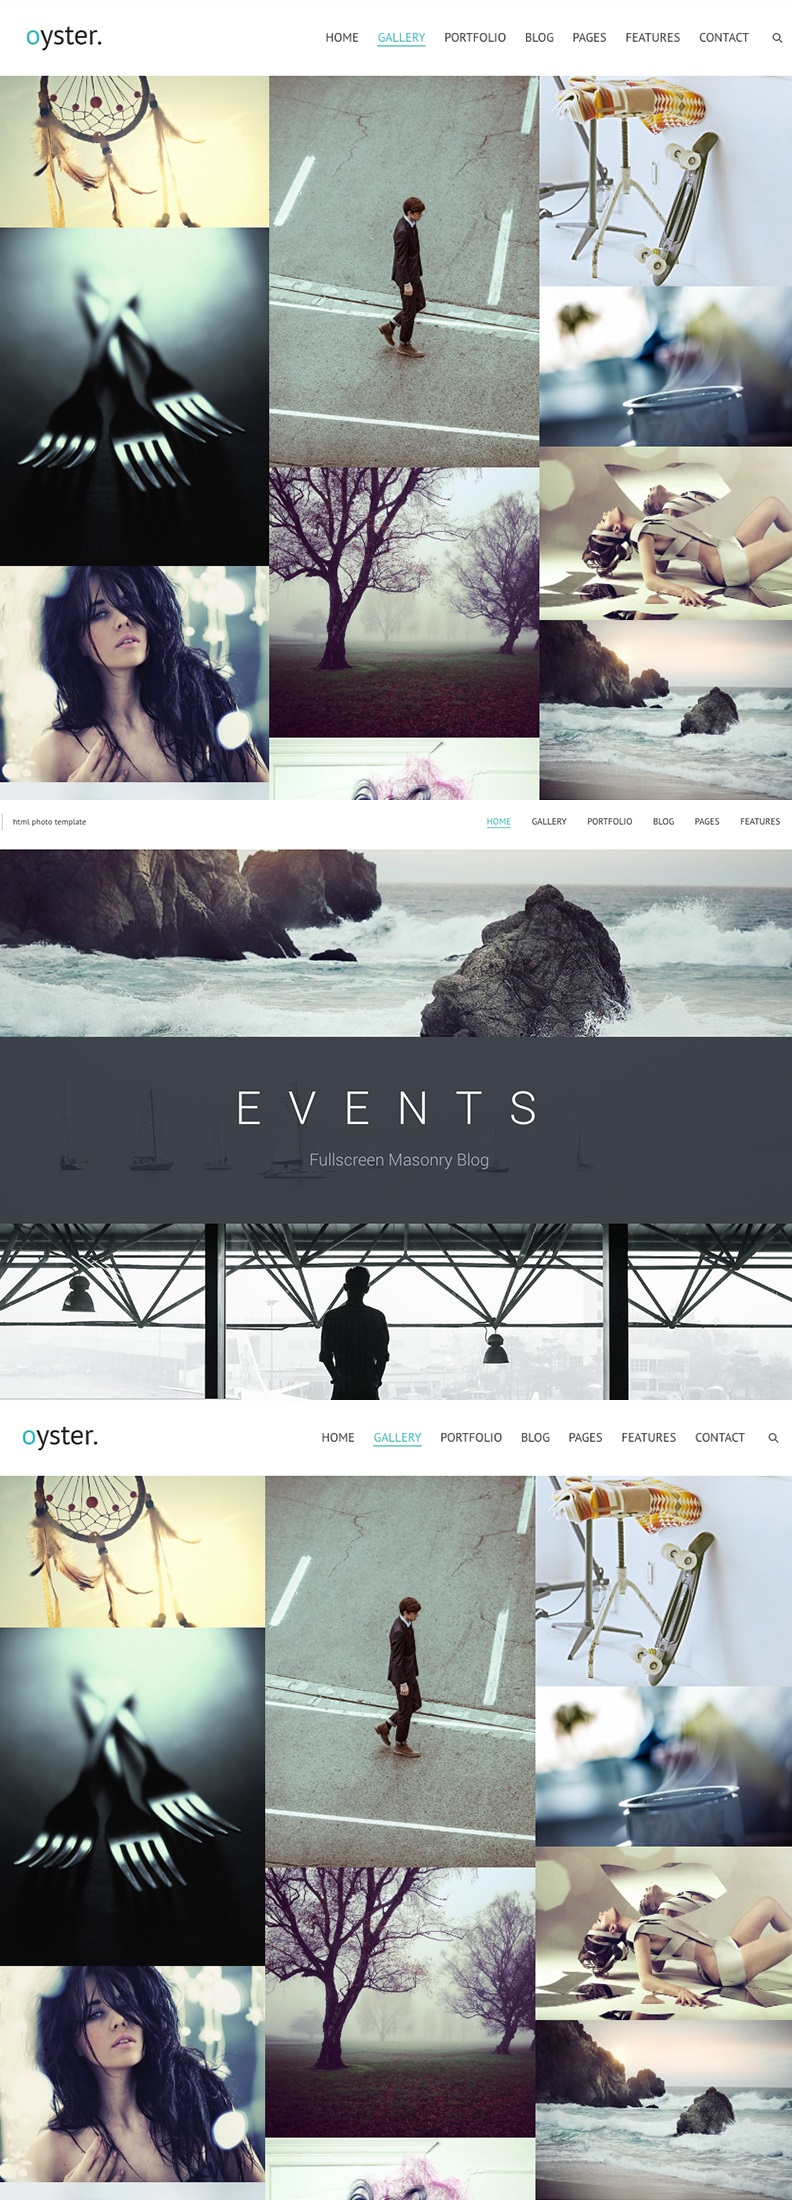 oyster fullscreen photo and video website template 63501